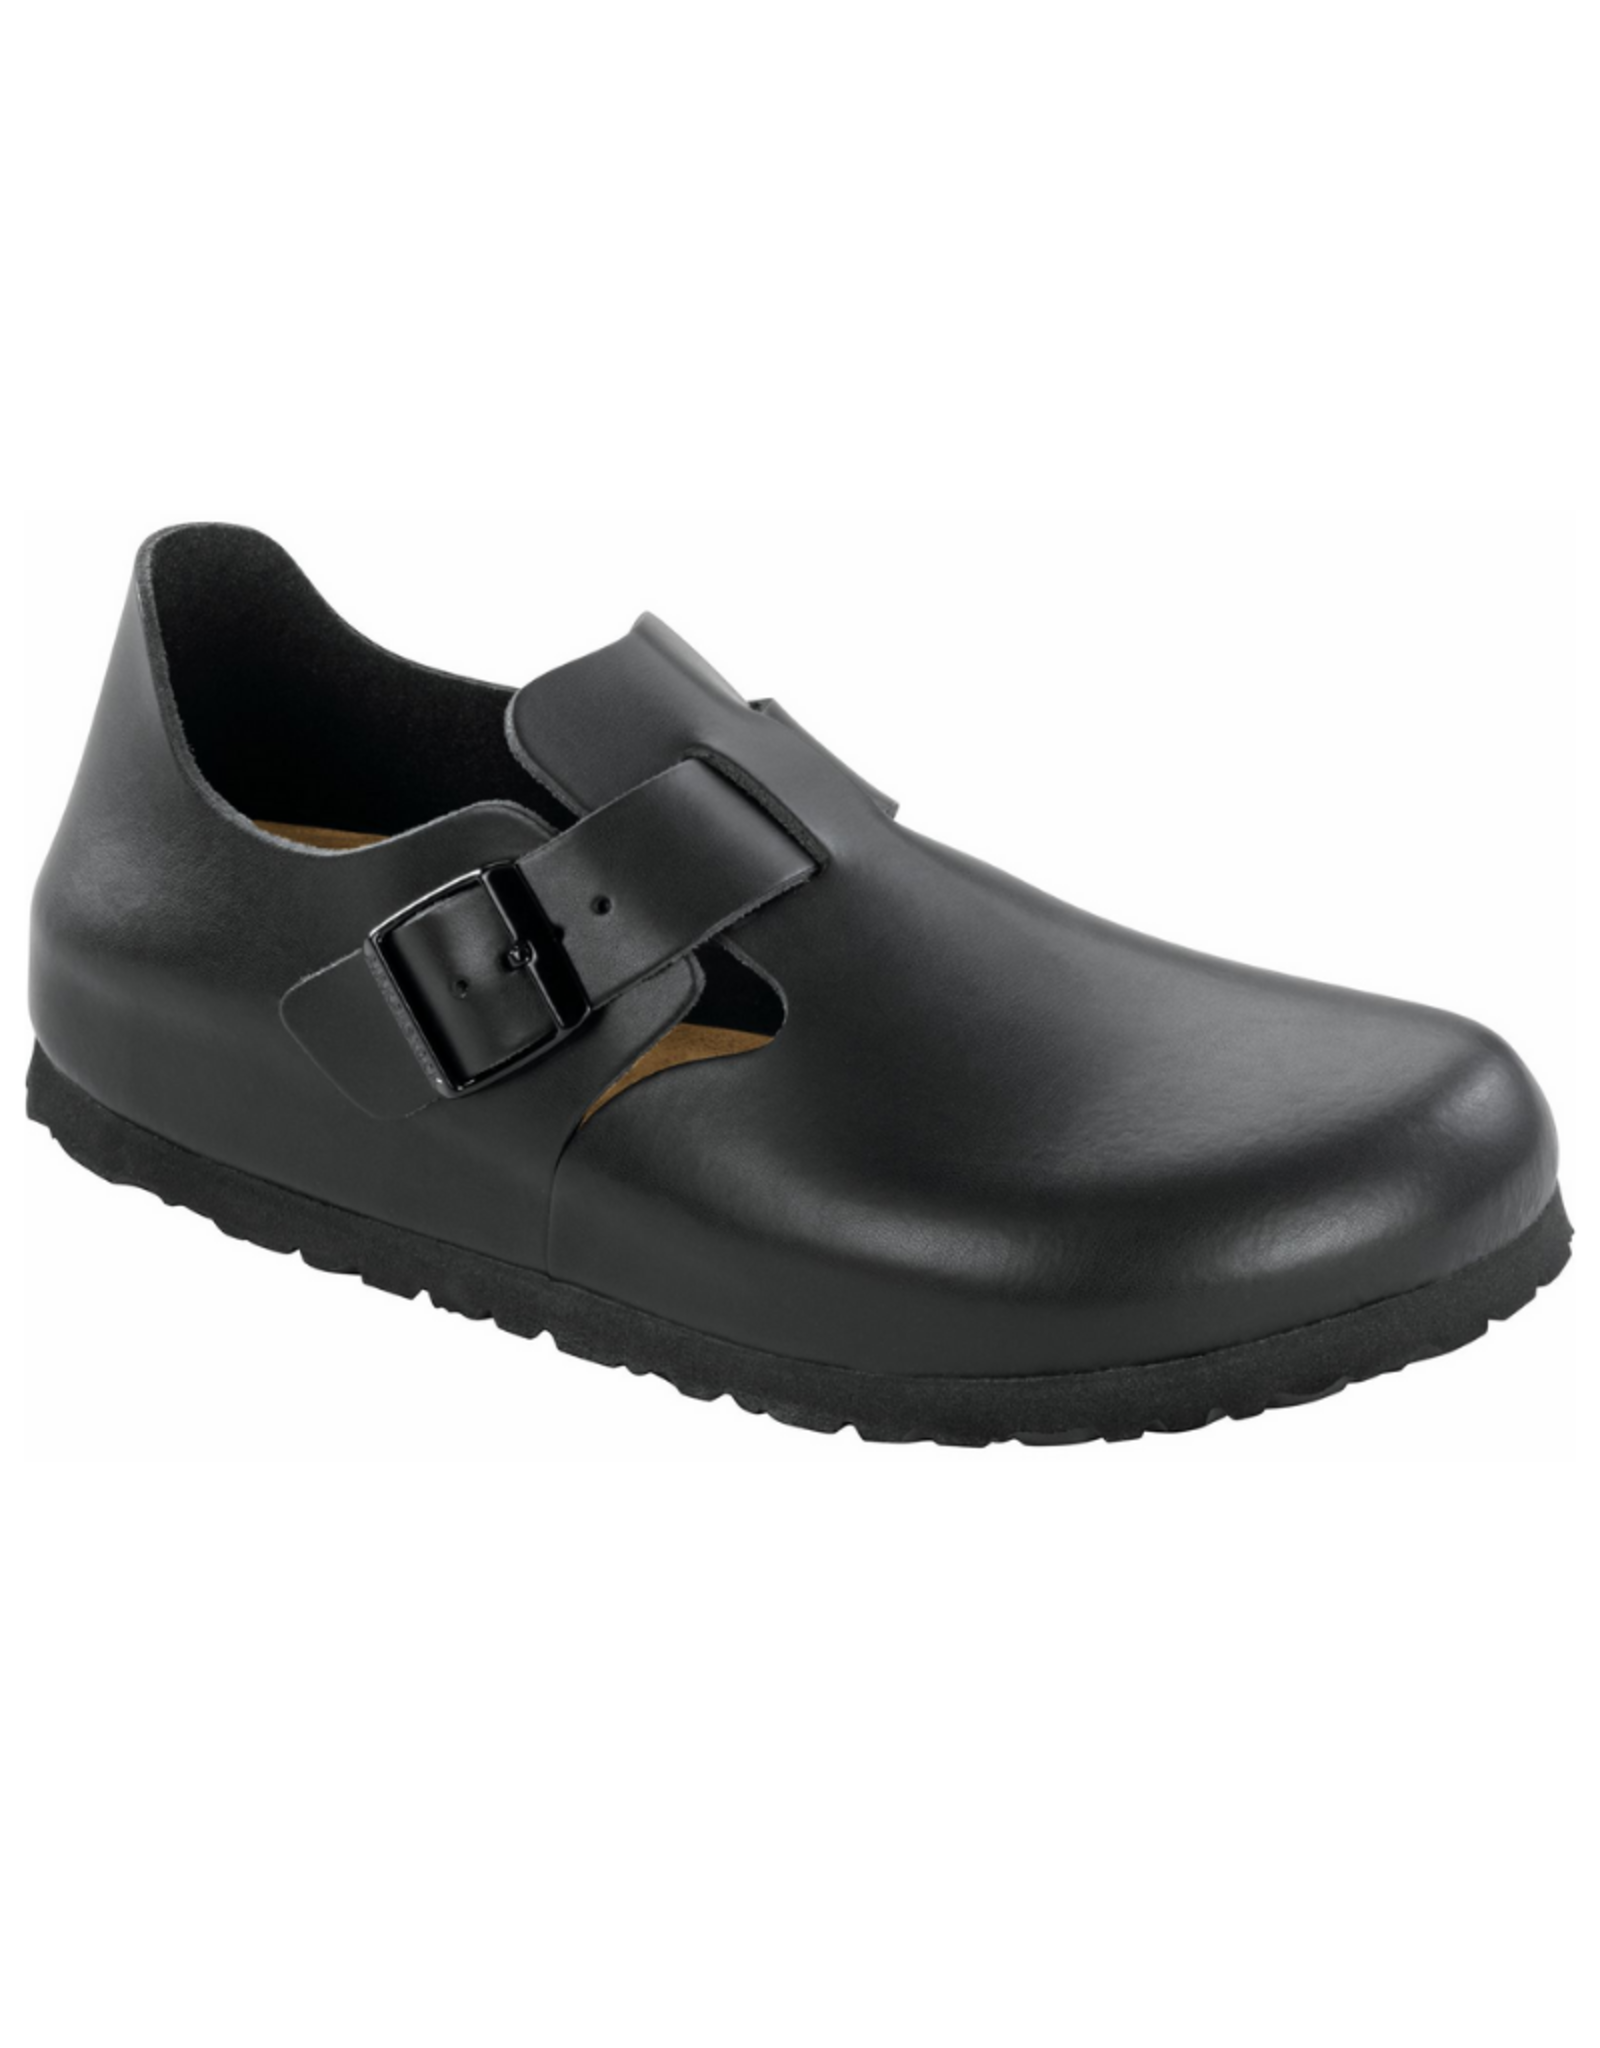 London Black Leather Soft Footbed